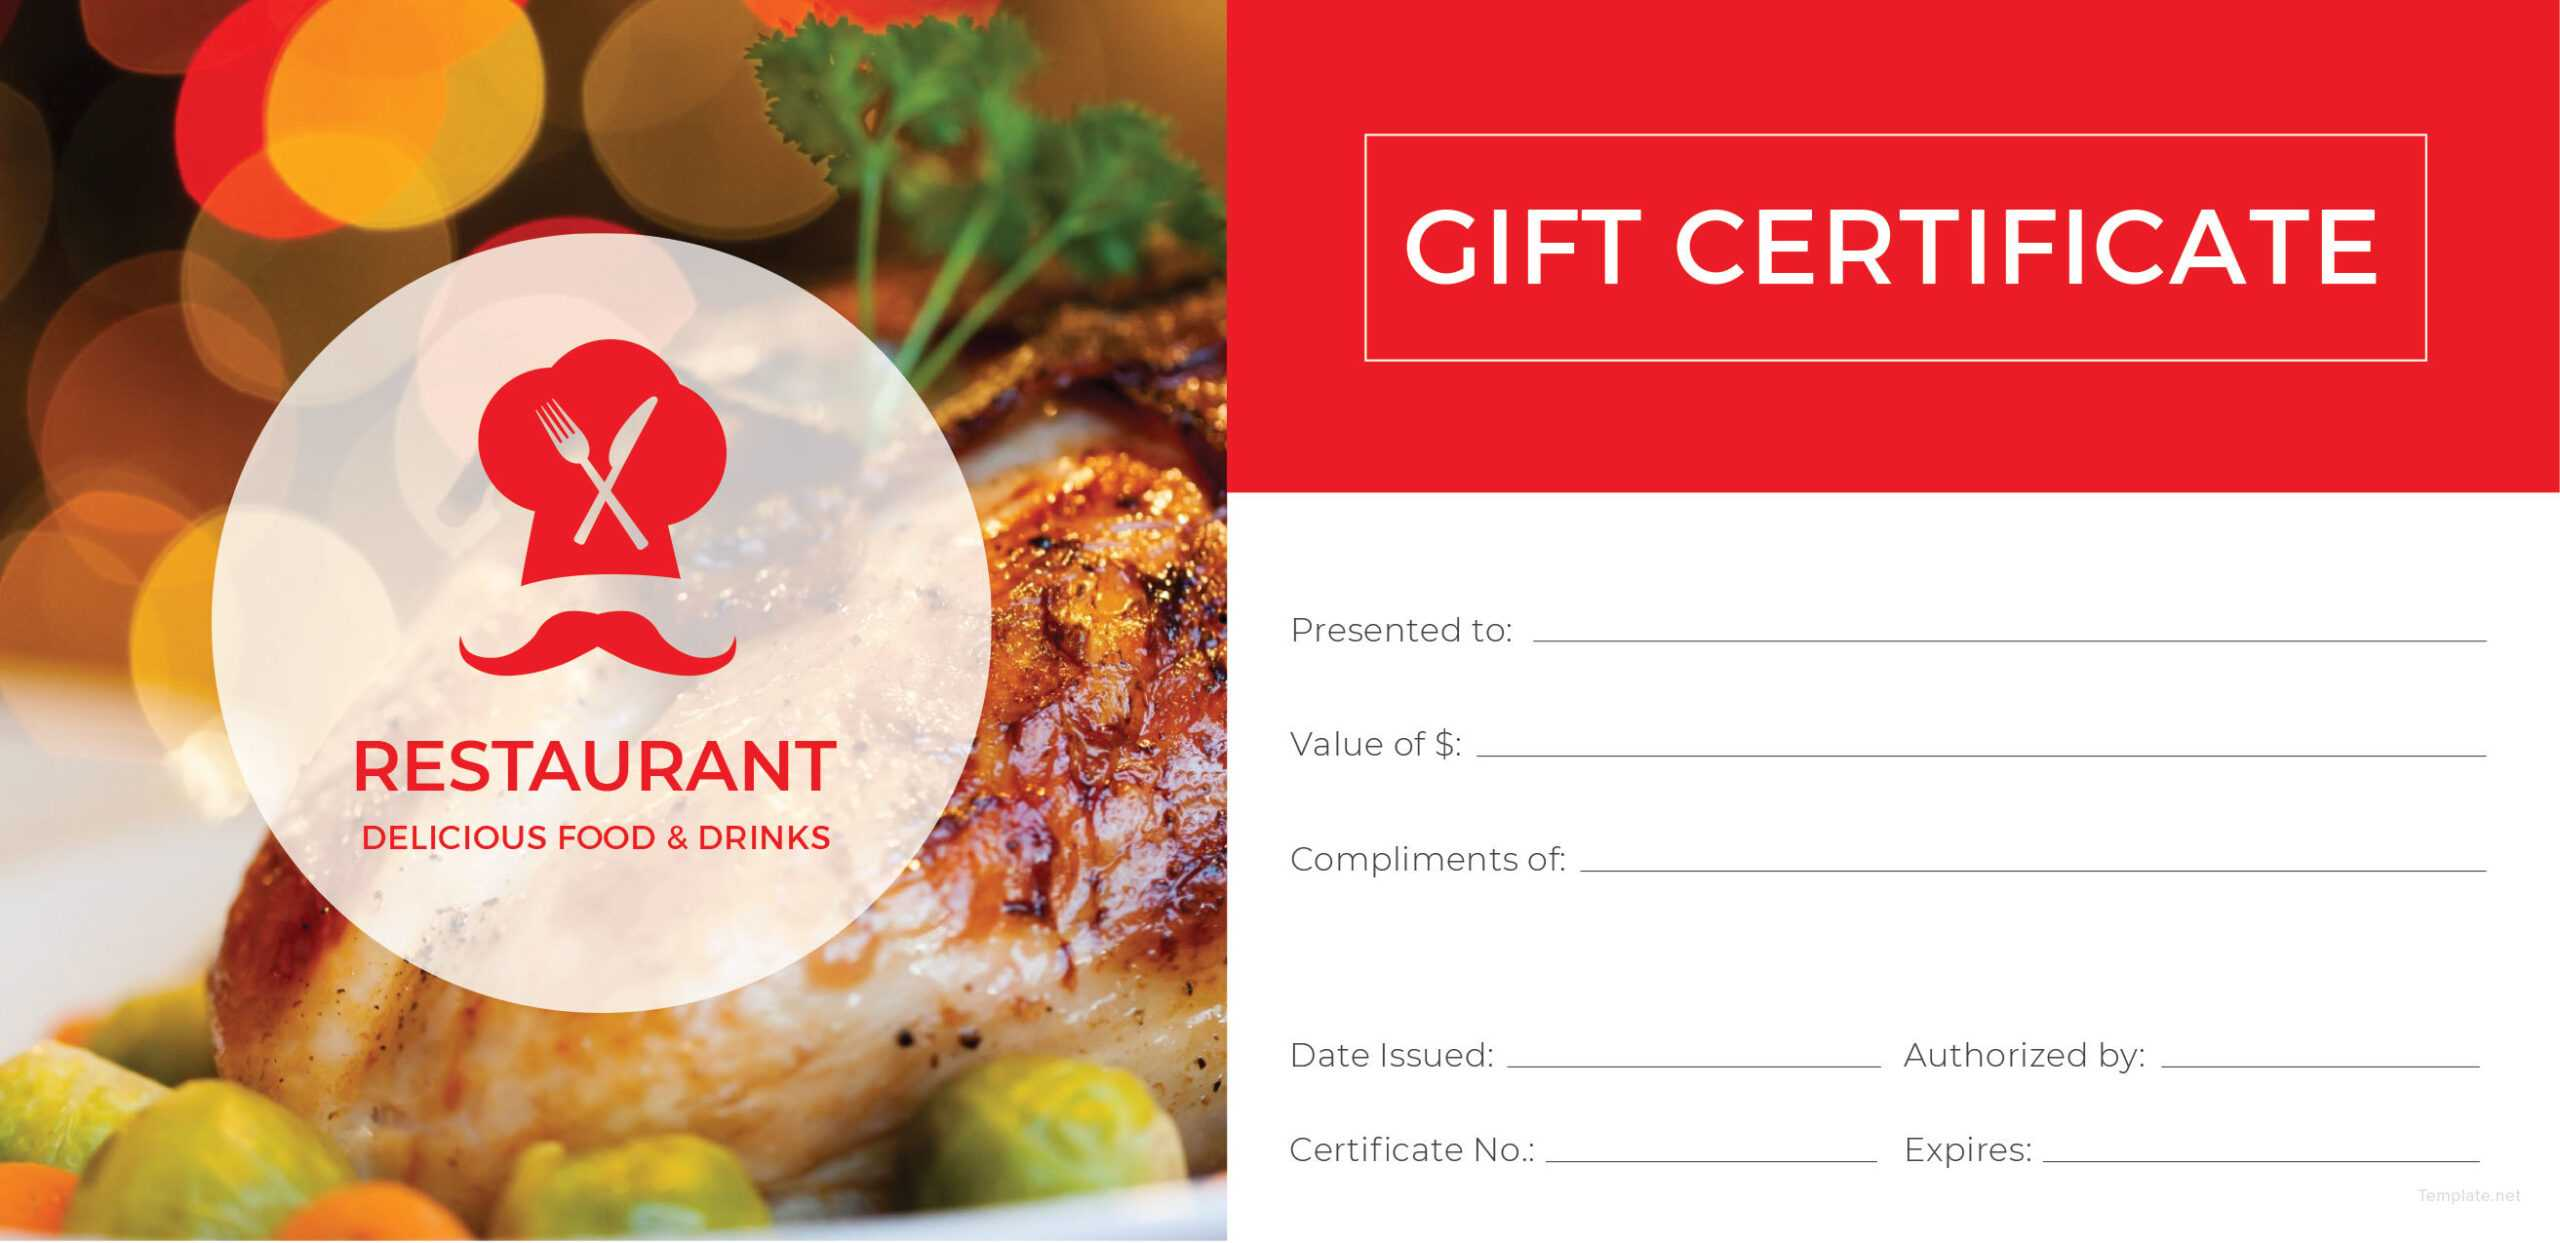 003 Restaurant Gift Certificates Templates Template Ideas Inside Restaurant Gift Certificate Template